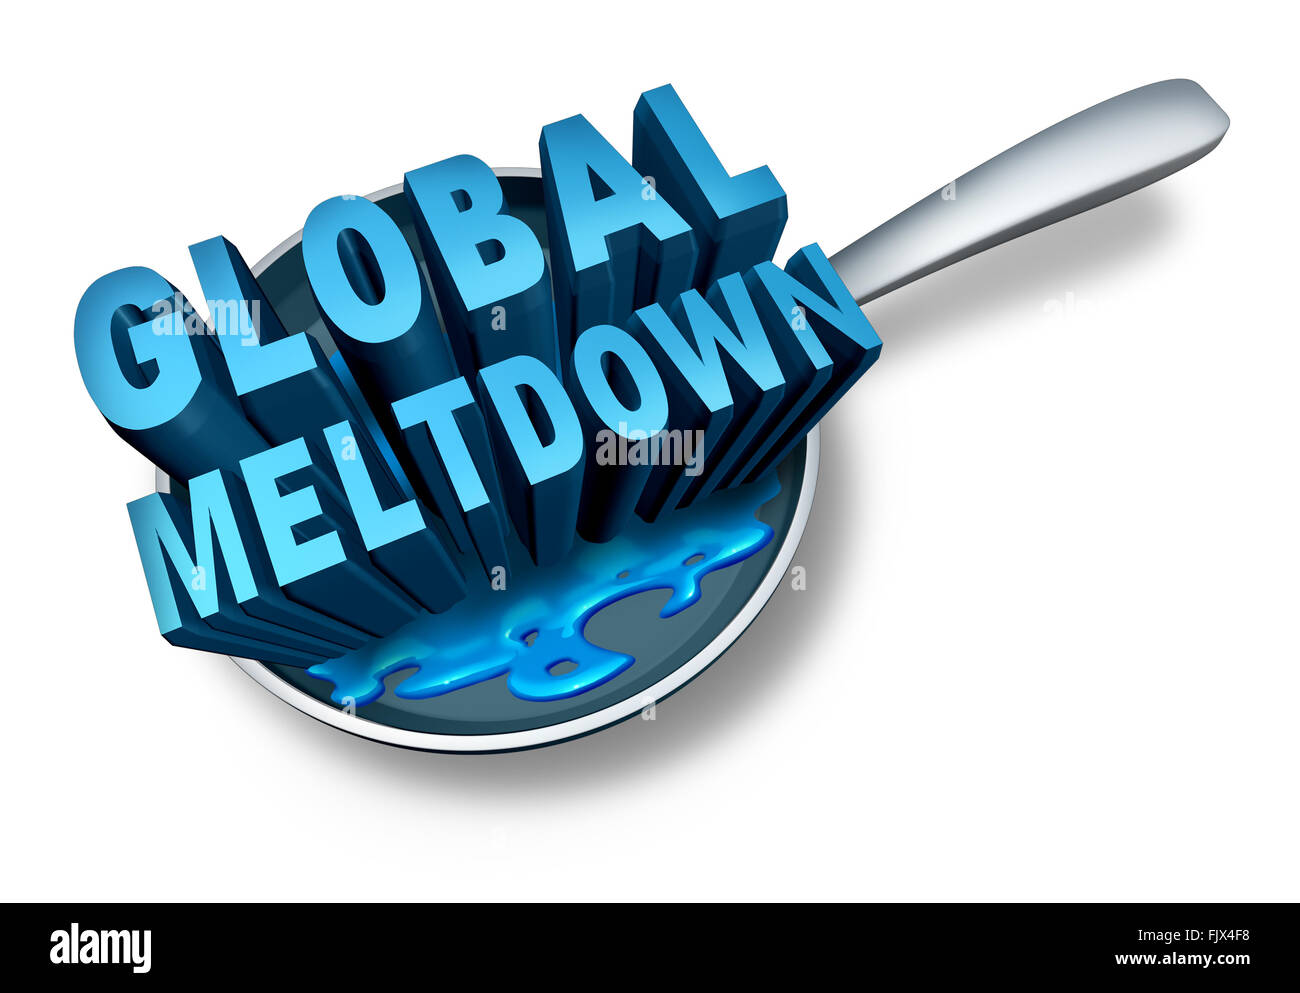 Global meltdown and financial crisis as a bankruptcy finance concept as an economy in trouble and business slump - Stock Image